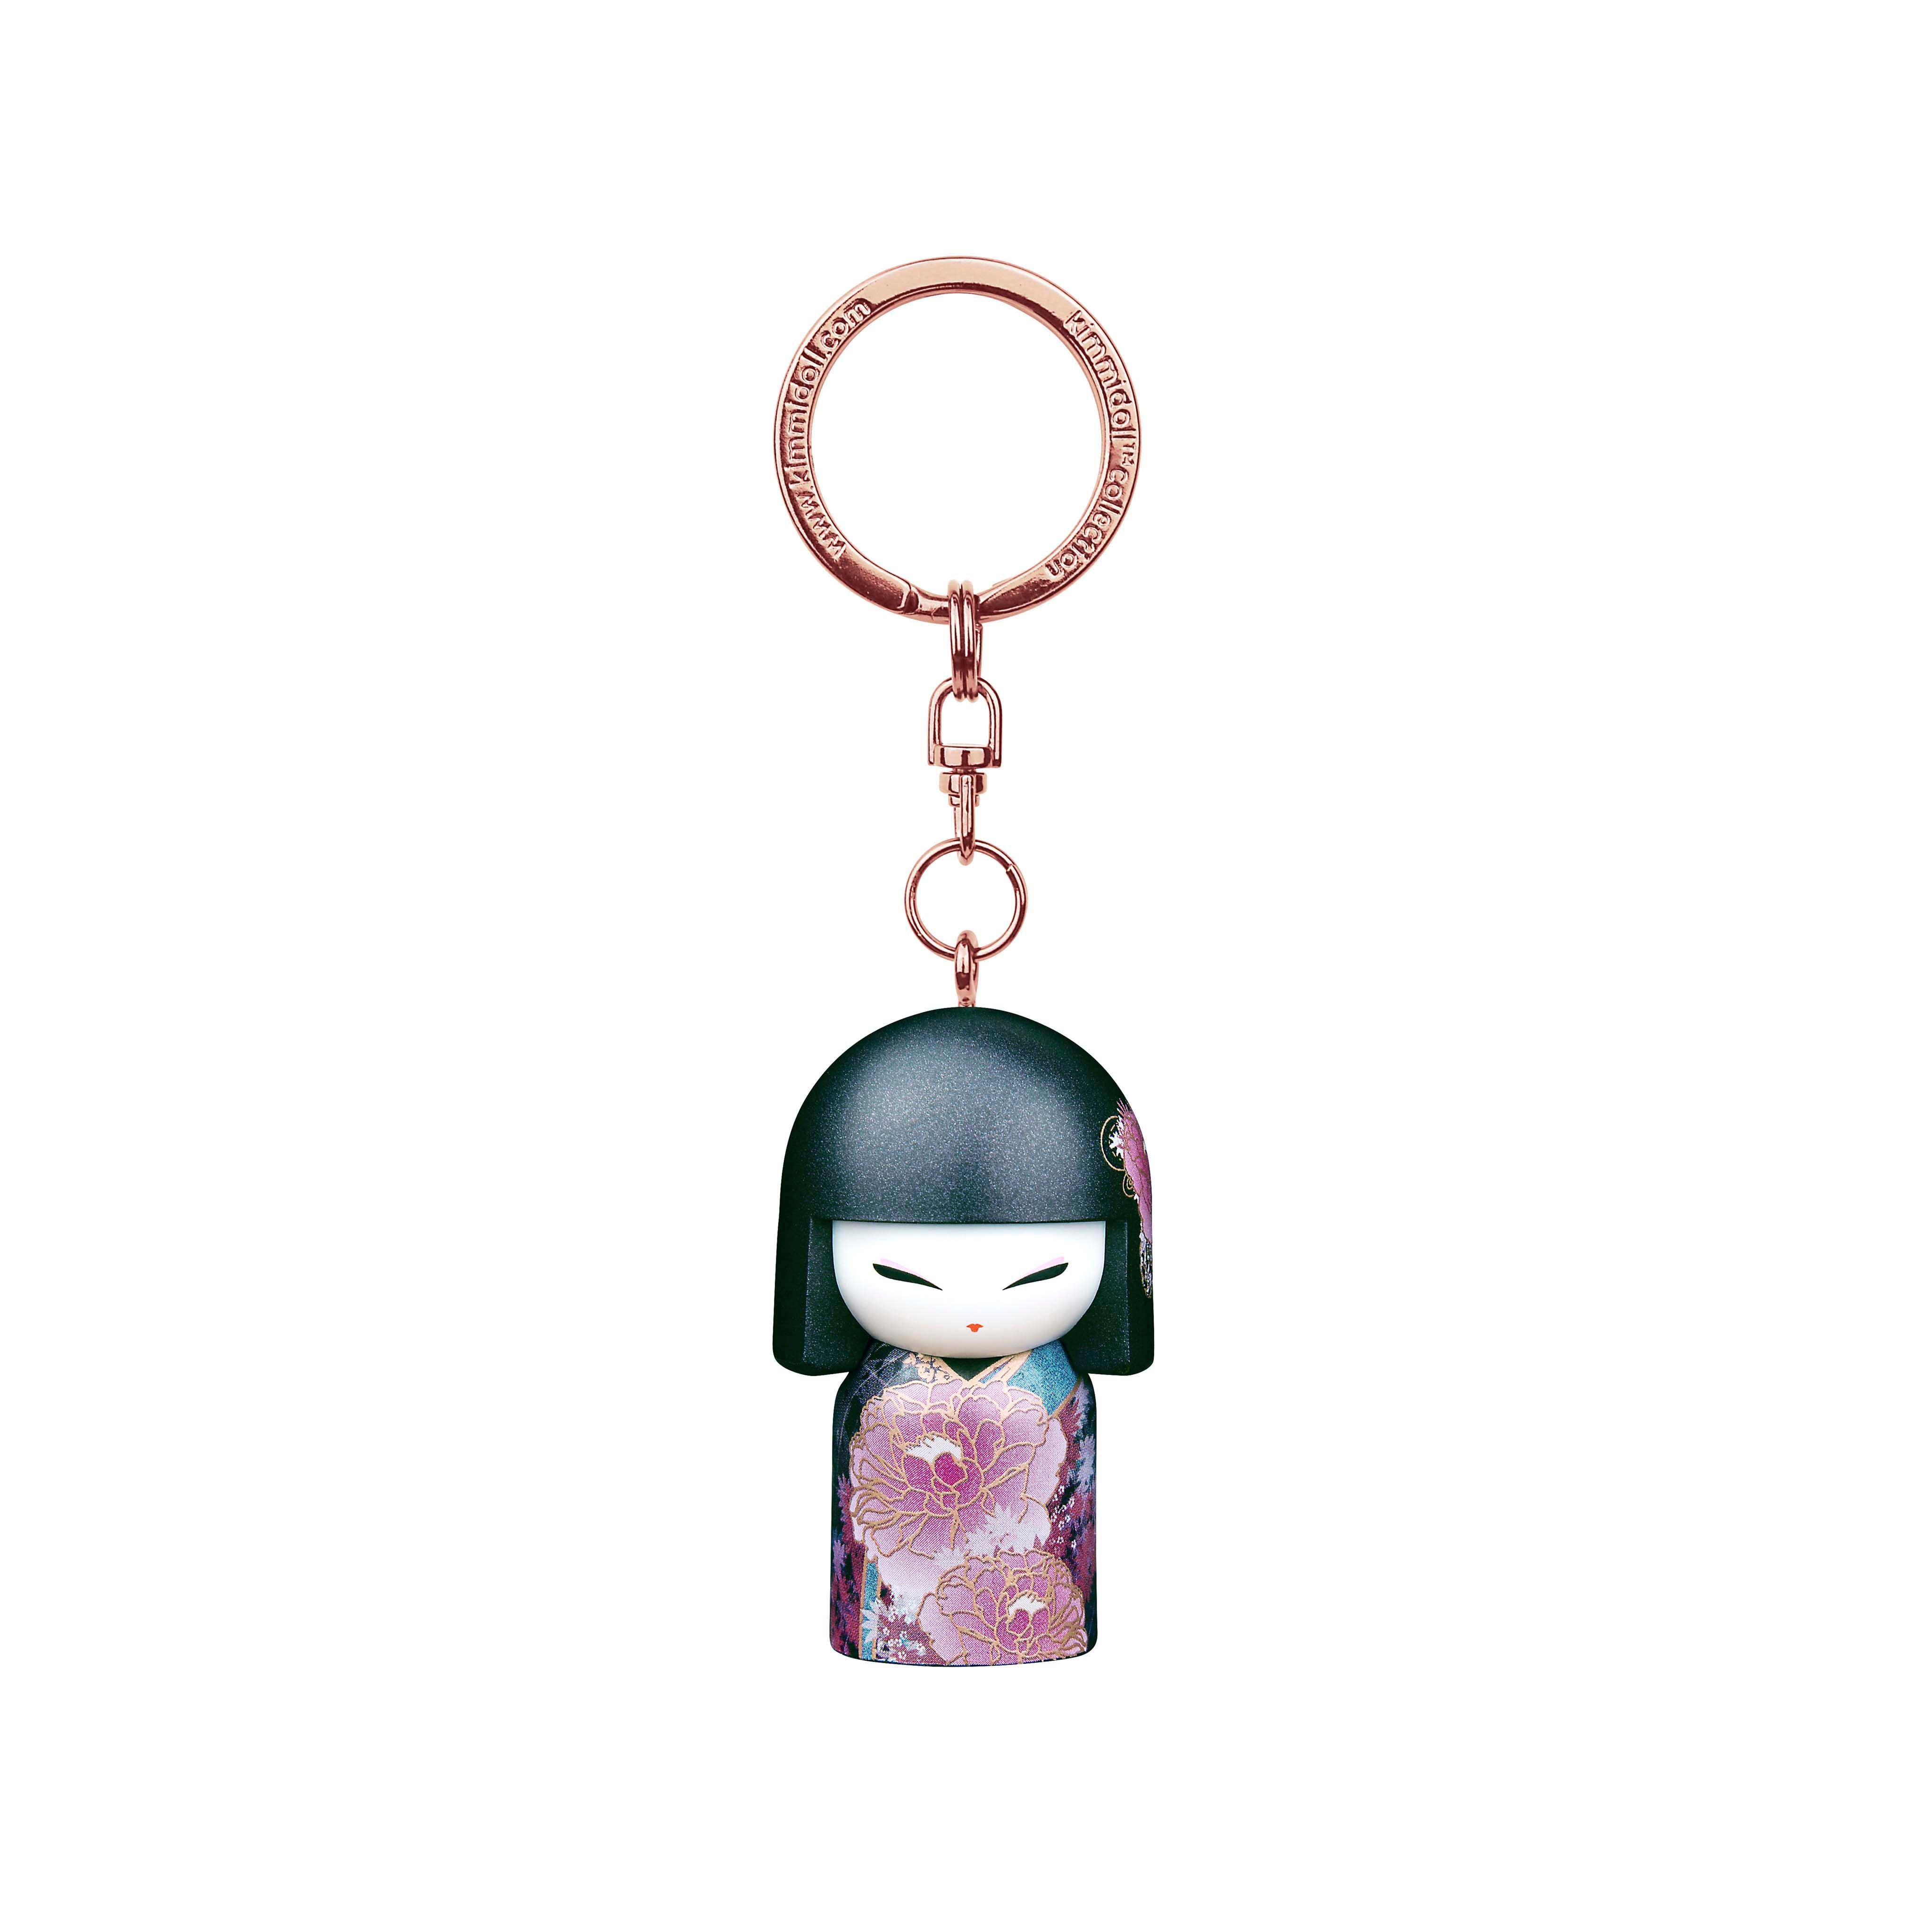 Haruko 'Growth' - Keychain